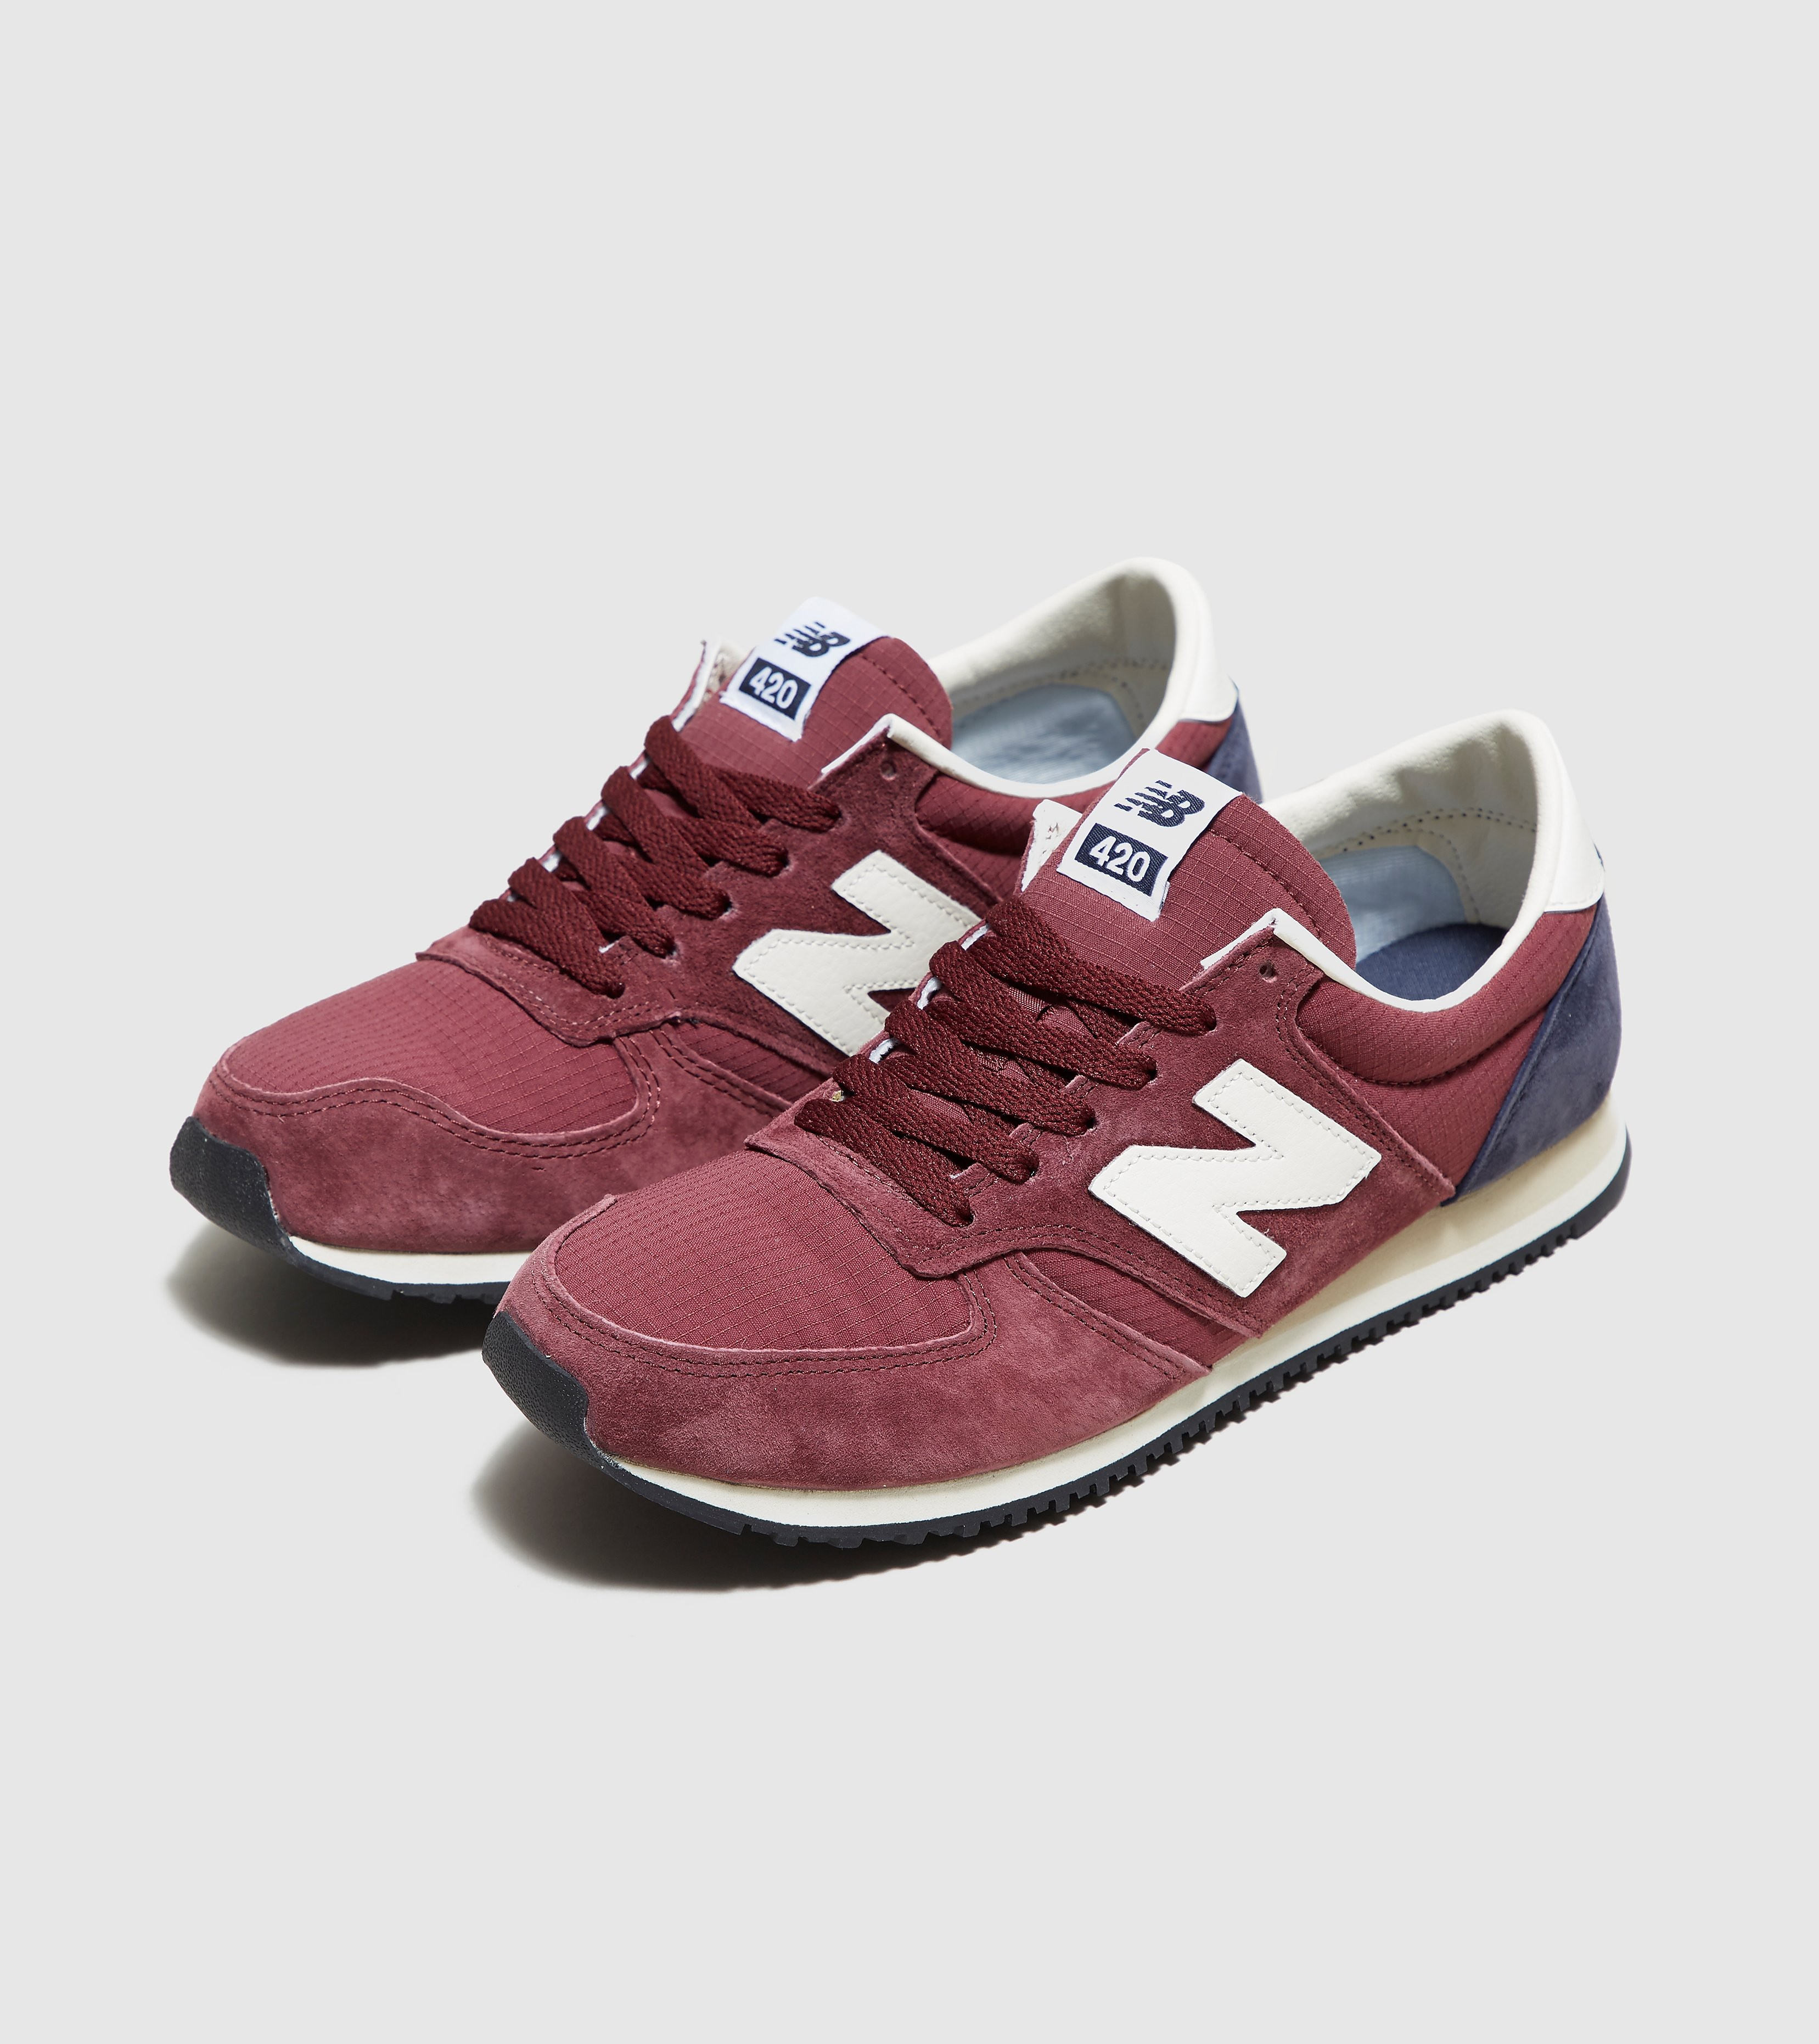 New Balance 420 Suede